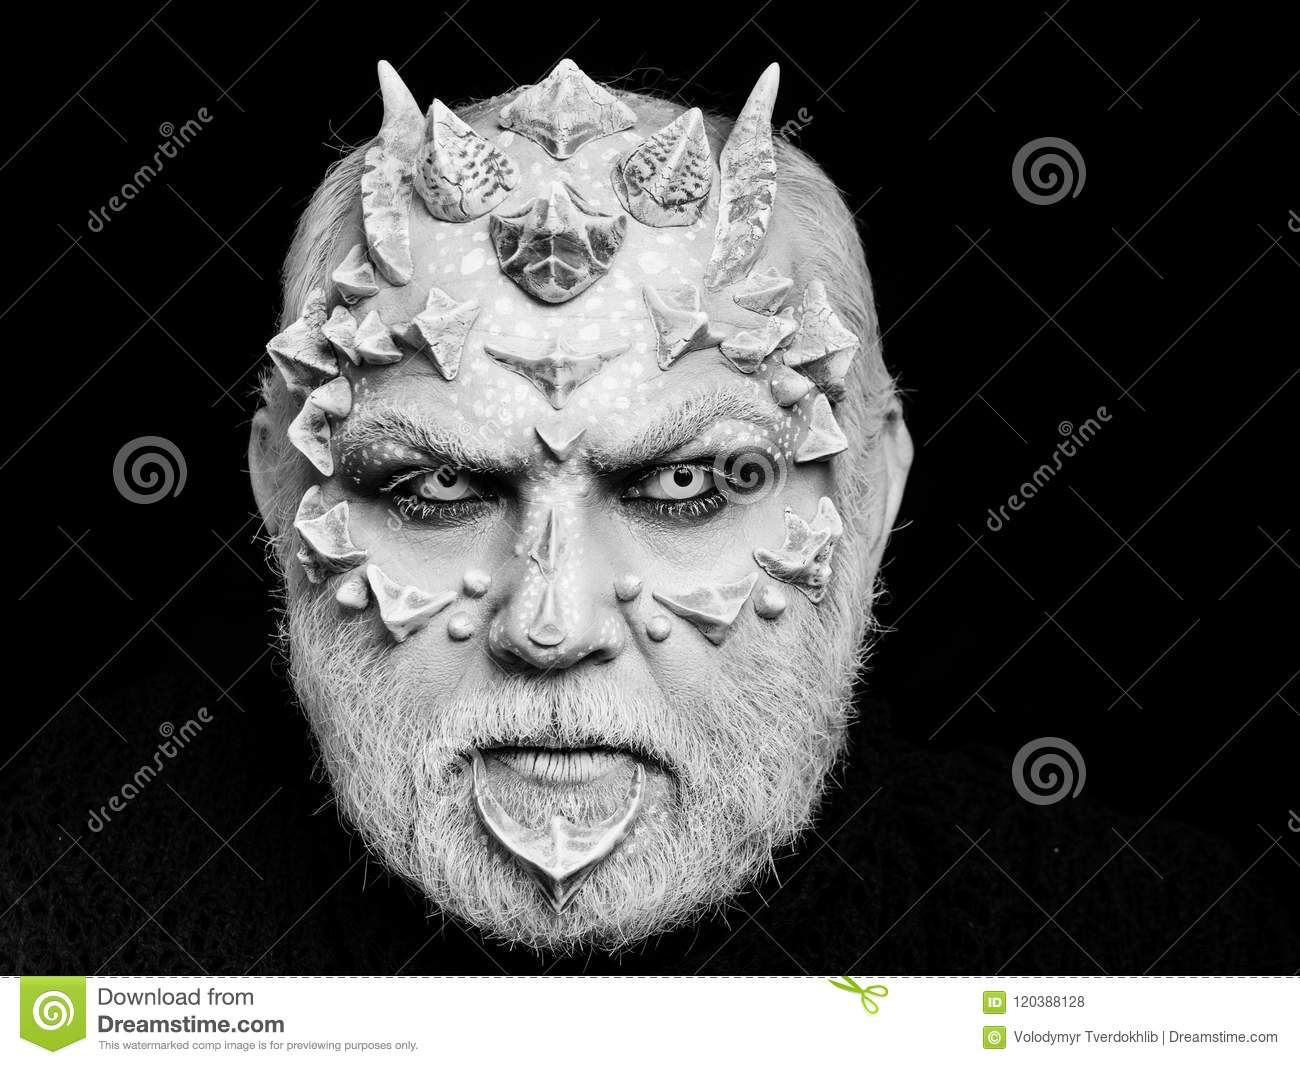 Scary Halloween Makeup For Guys With Beards.Creative Make Up Horror And Fantasy Concept Stock Photo